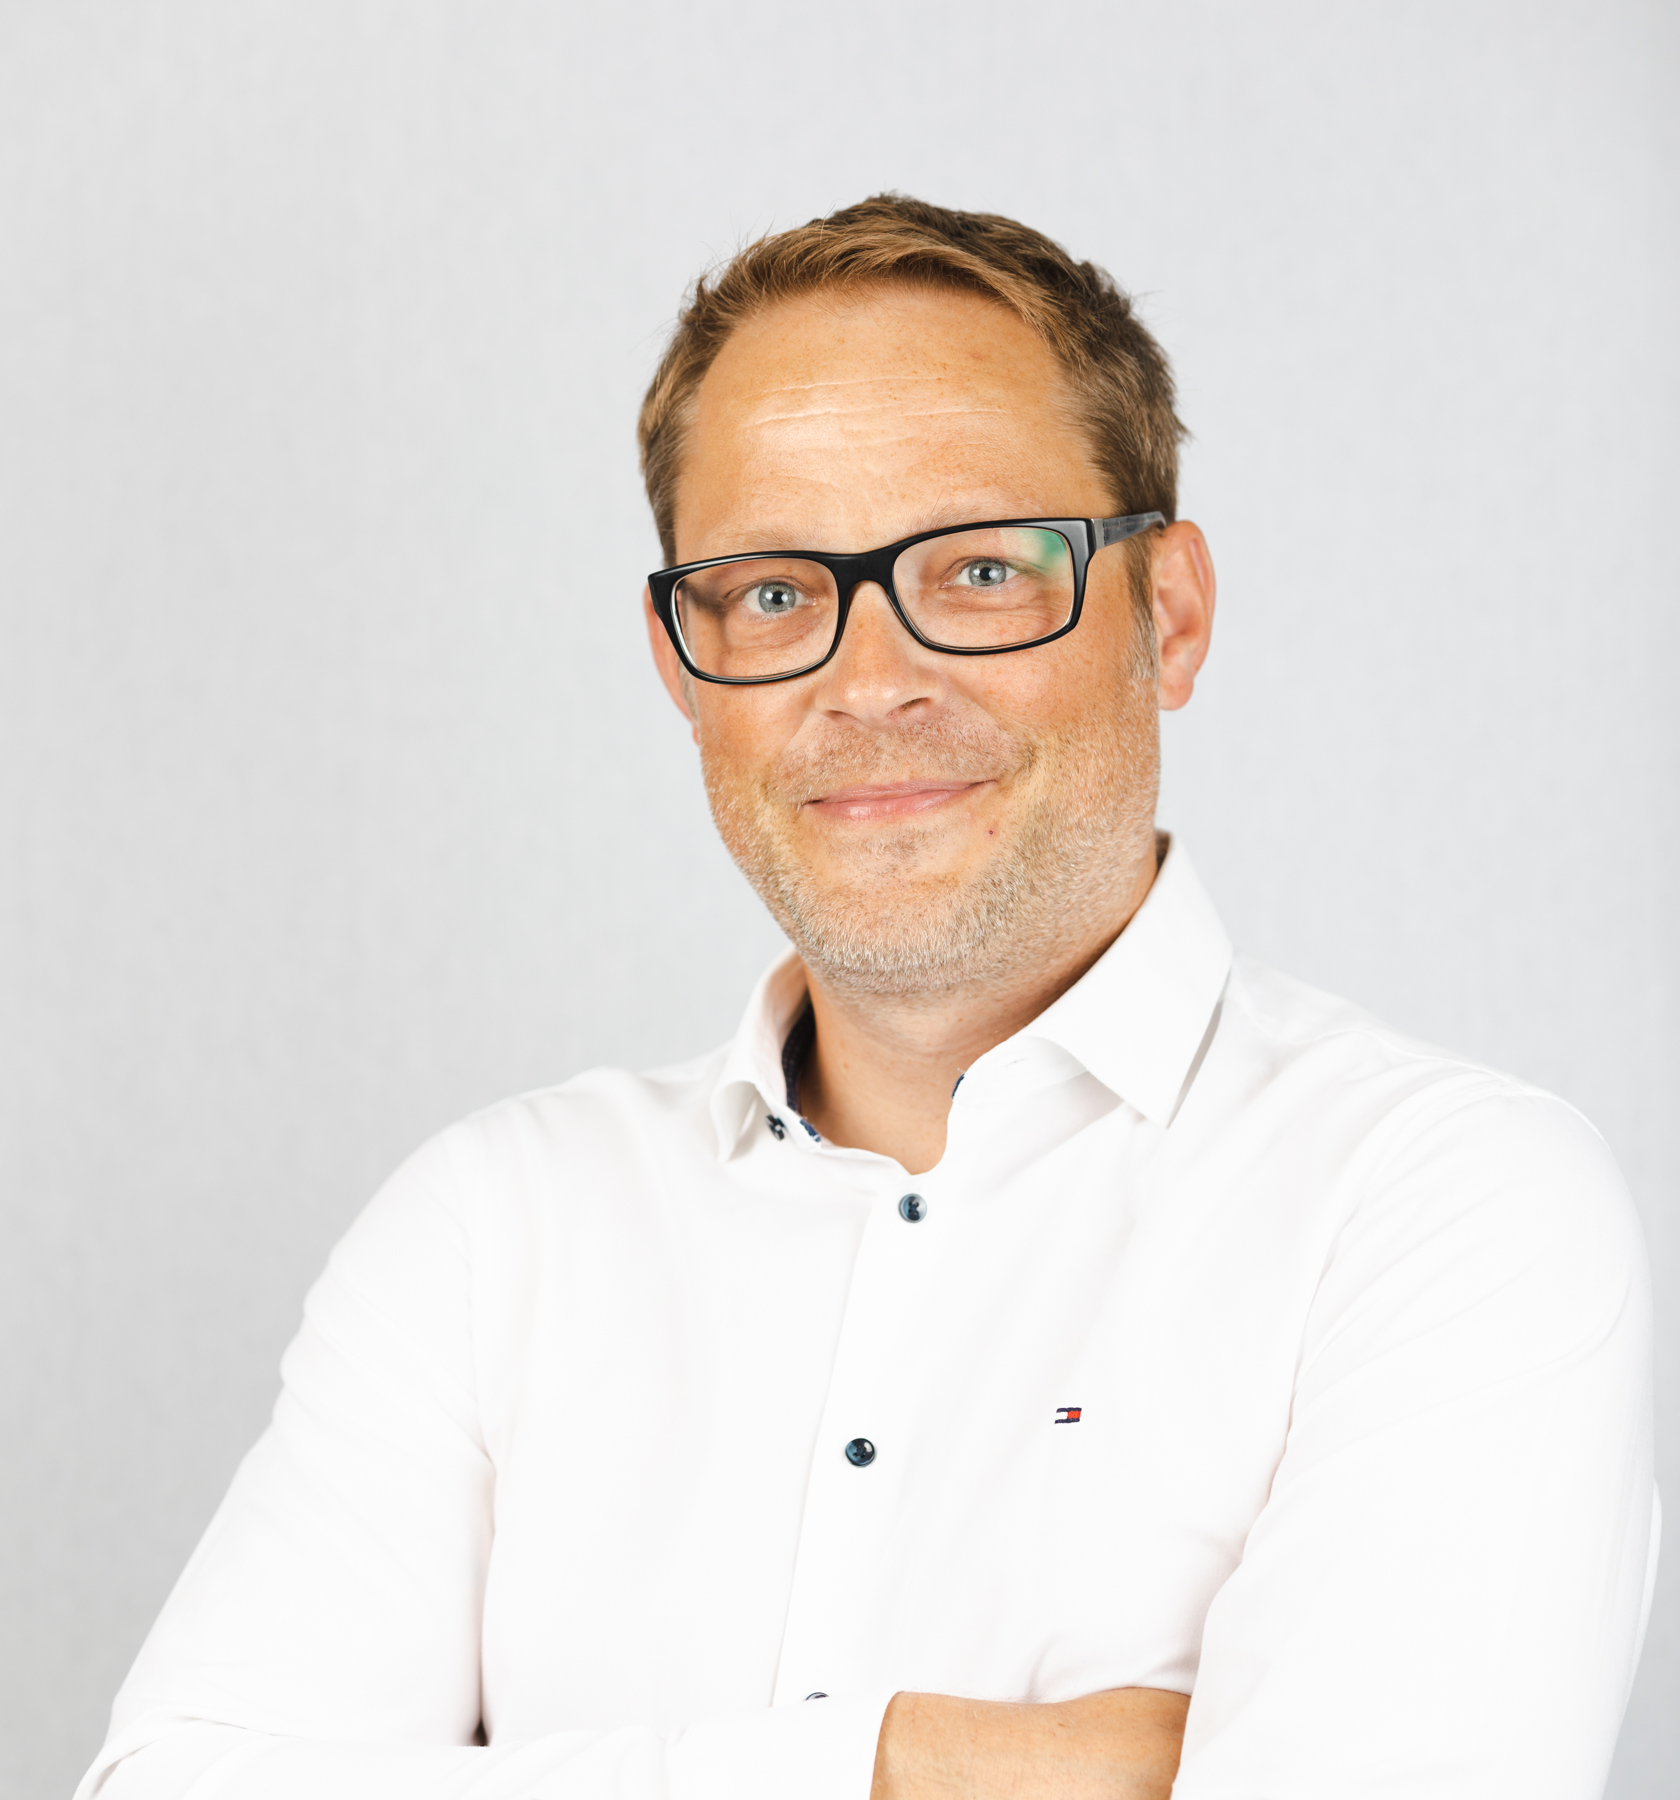 Holger Hartwig---Chief Executive Officer